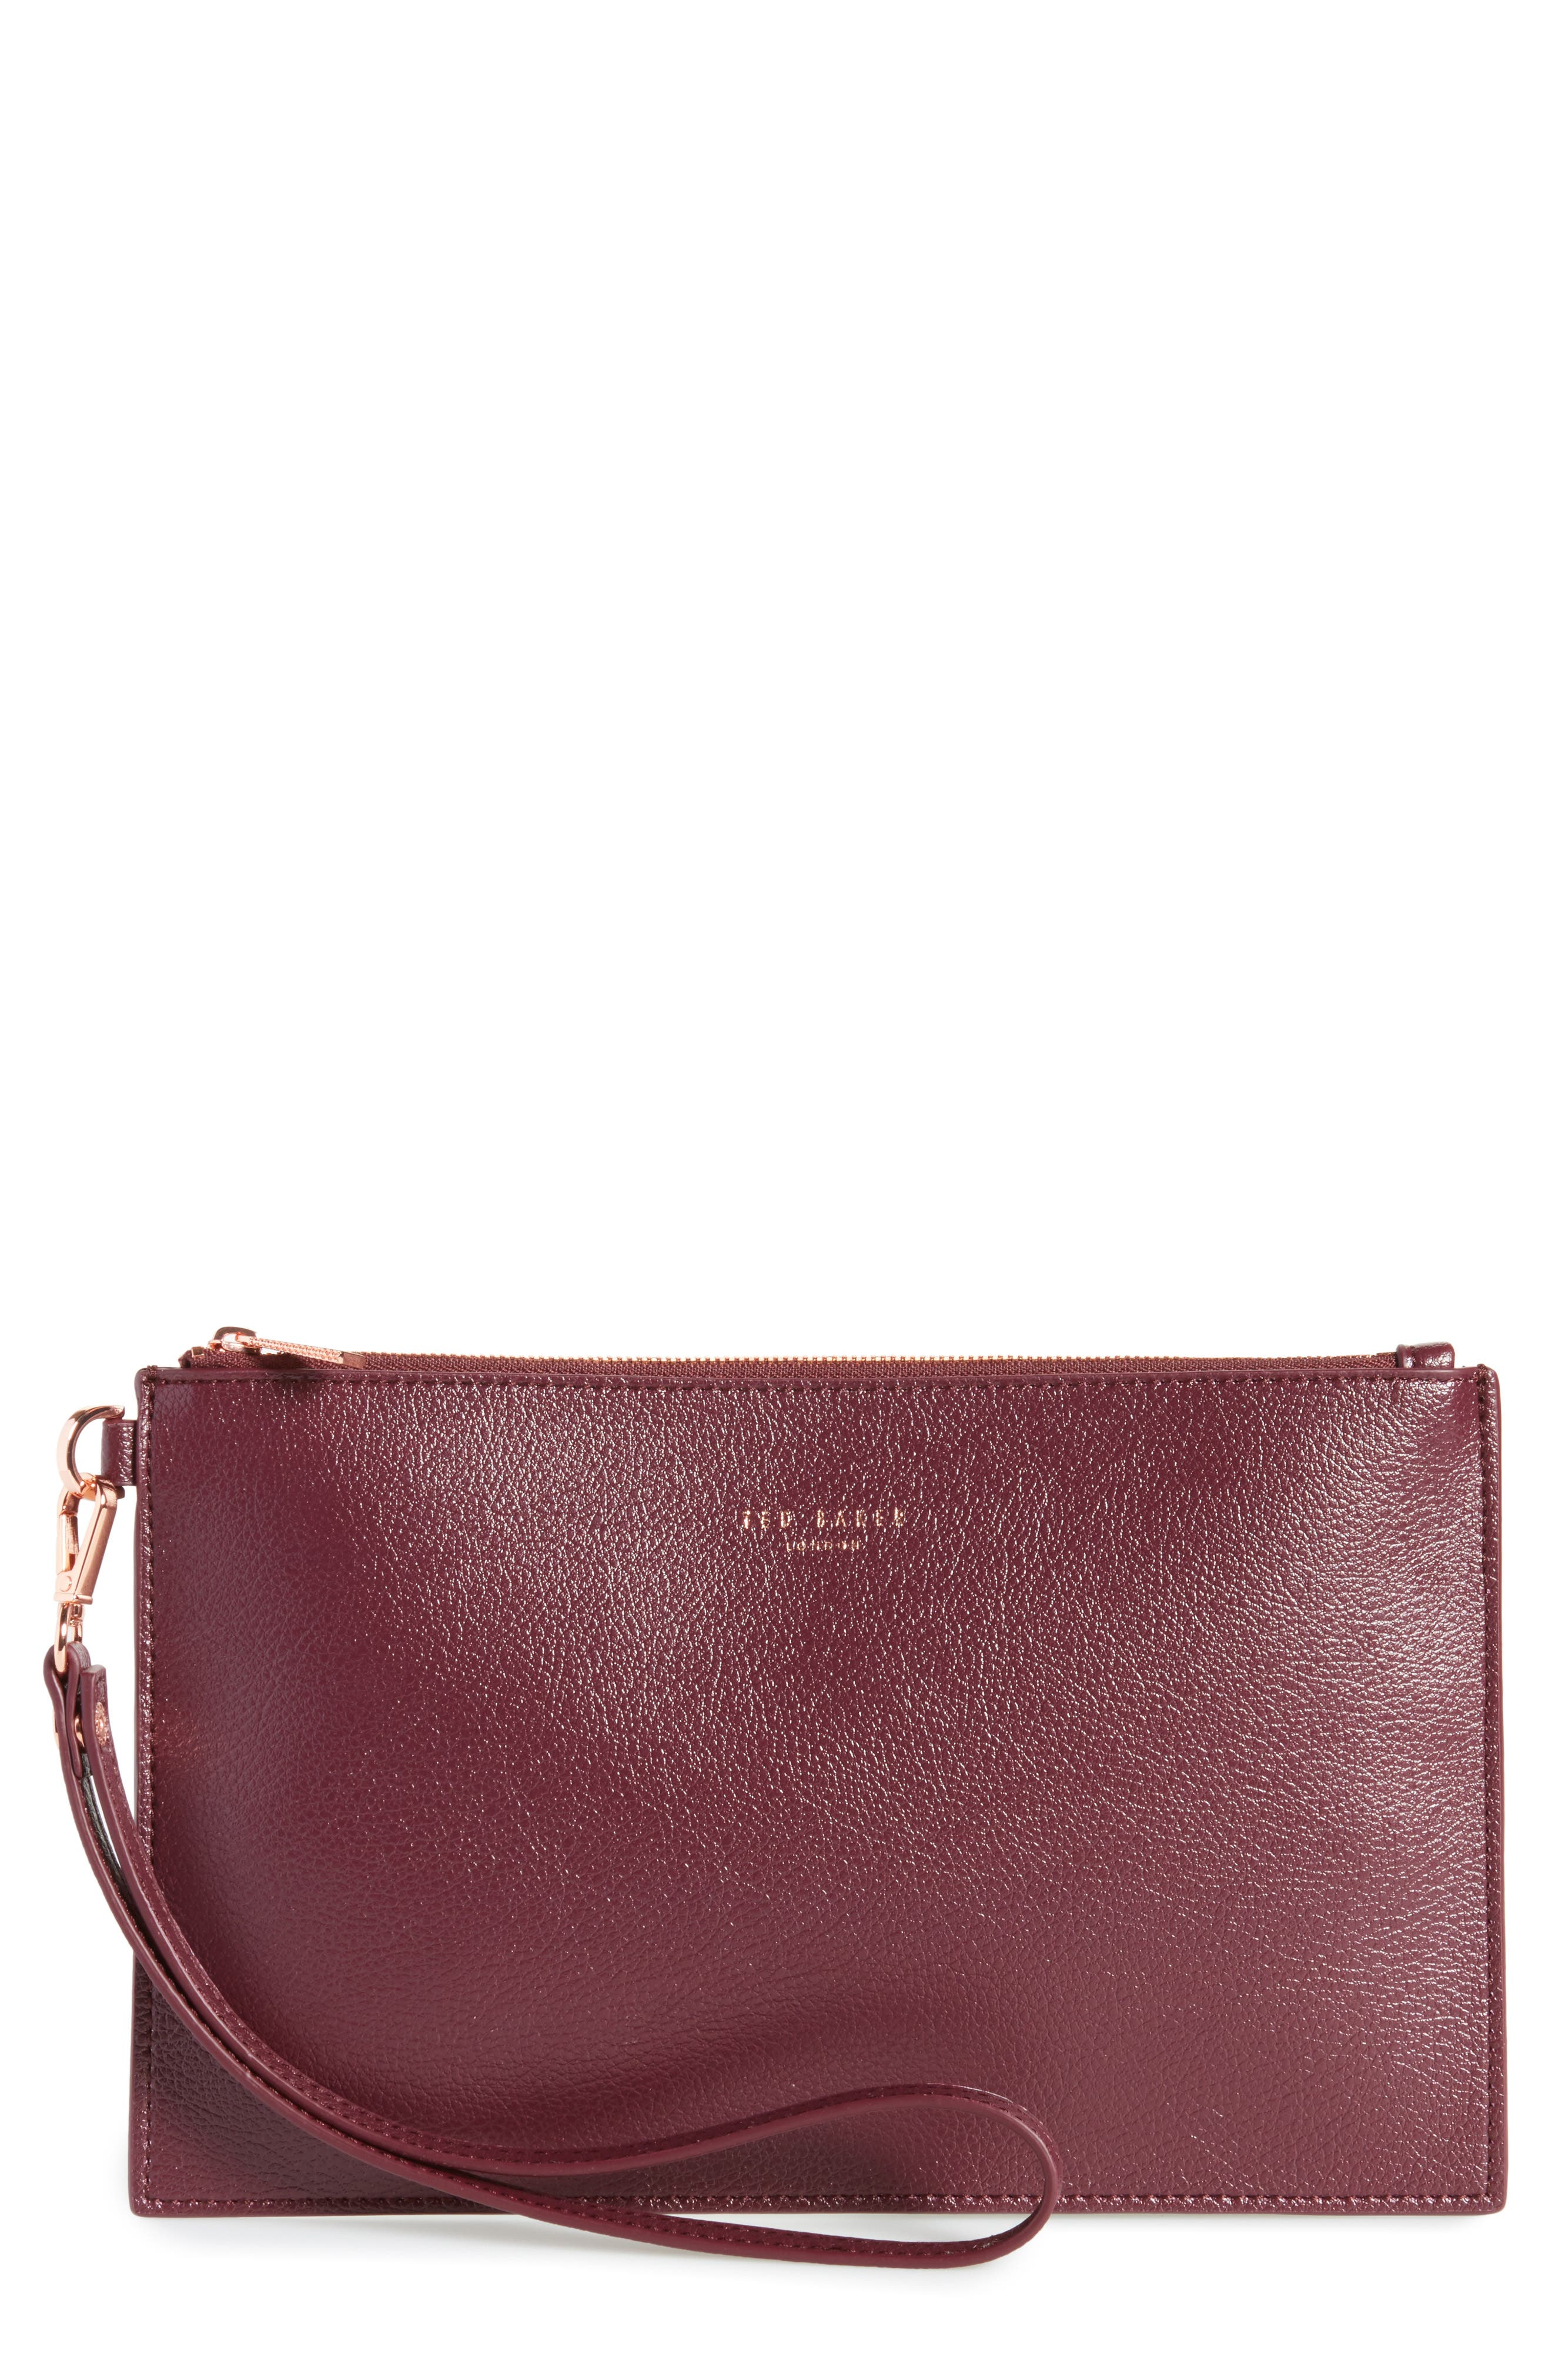 Alternate Image 1 Selected - Ted Baker London Top Zip Faux Leather Pouch